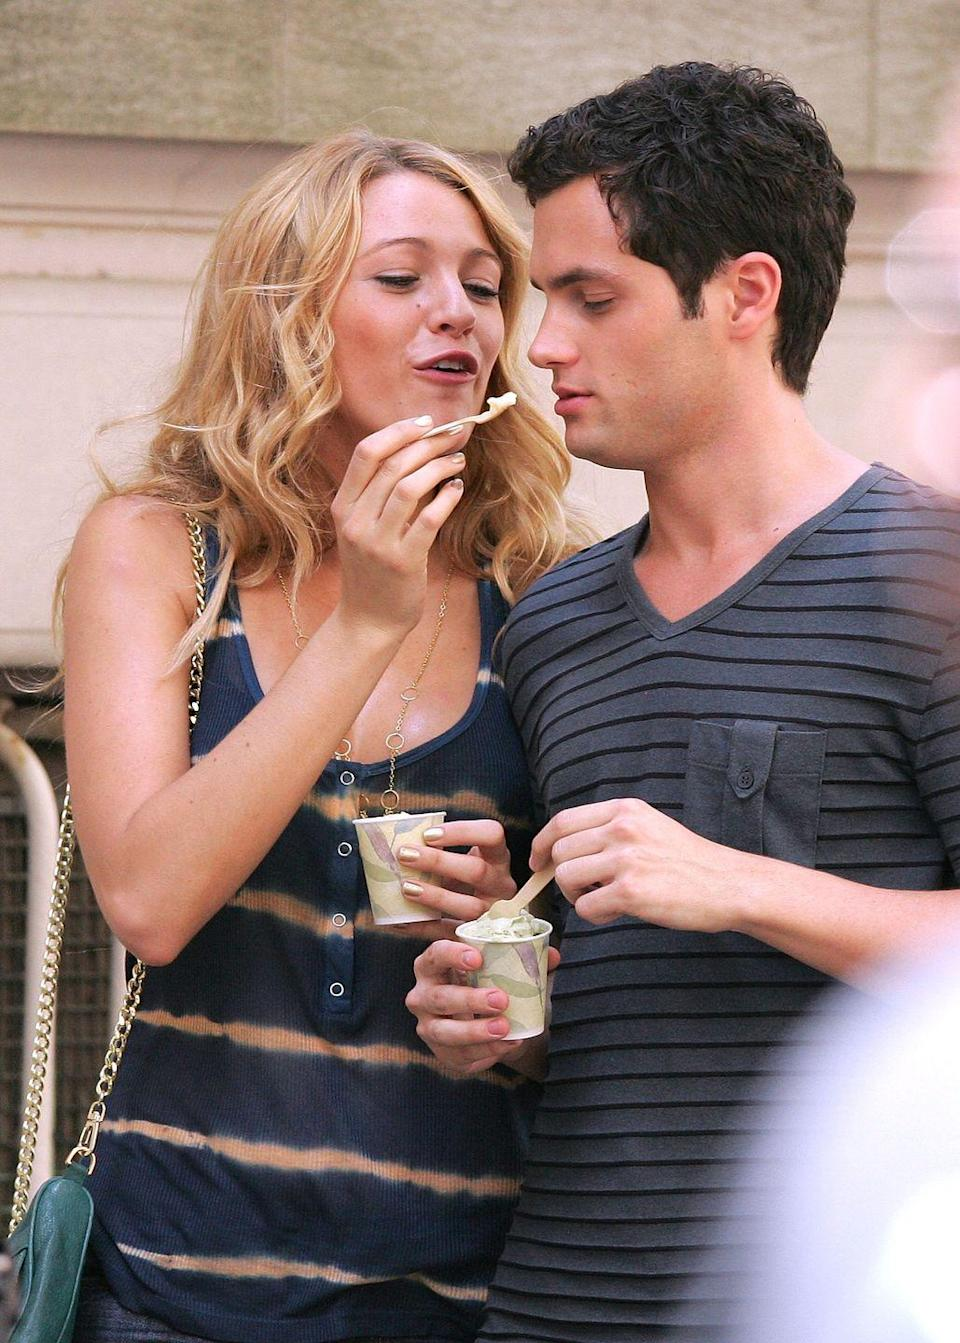 """<p>Taking a cue from their on-screen characters, the <em>Gossip Girl </em>co-stars' relationship heated up in real life, with Lively and Badgley dating for a solid <a href=""""http://www.people.com/people/article/0,,20437192,00.html"""" rel=""""nofollow noopener"""" target=""""_blank"""" data-ylk=""""slk:three years"""" class=""""link rapid-noclick-resp"""">three years</a> while working together, too. Their romance ended in 2010, which must've made it super strange to not only continue working together but also to <em>marry</em> each other on the show during the final, 2012 season.</p>"""